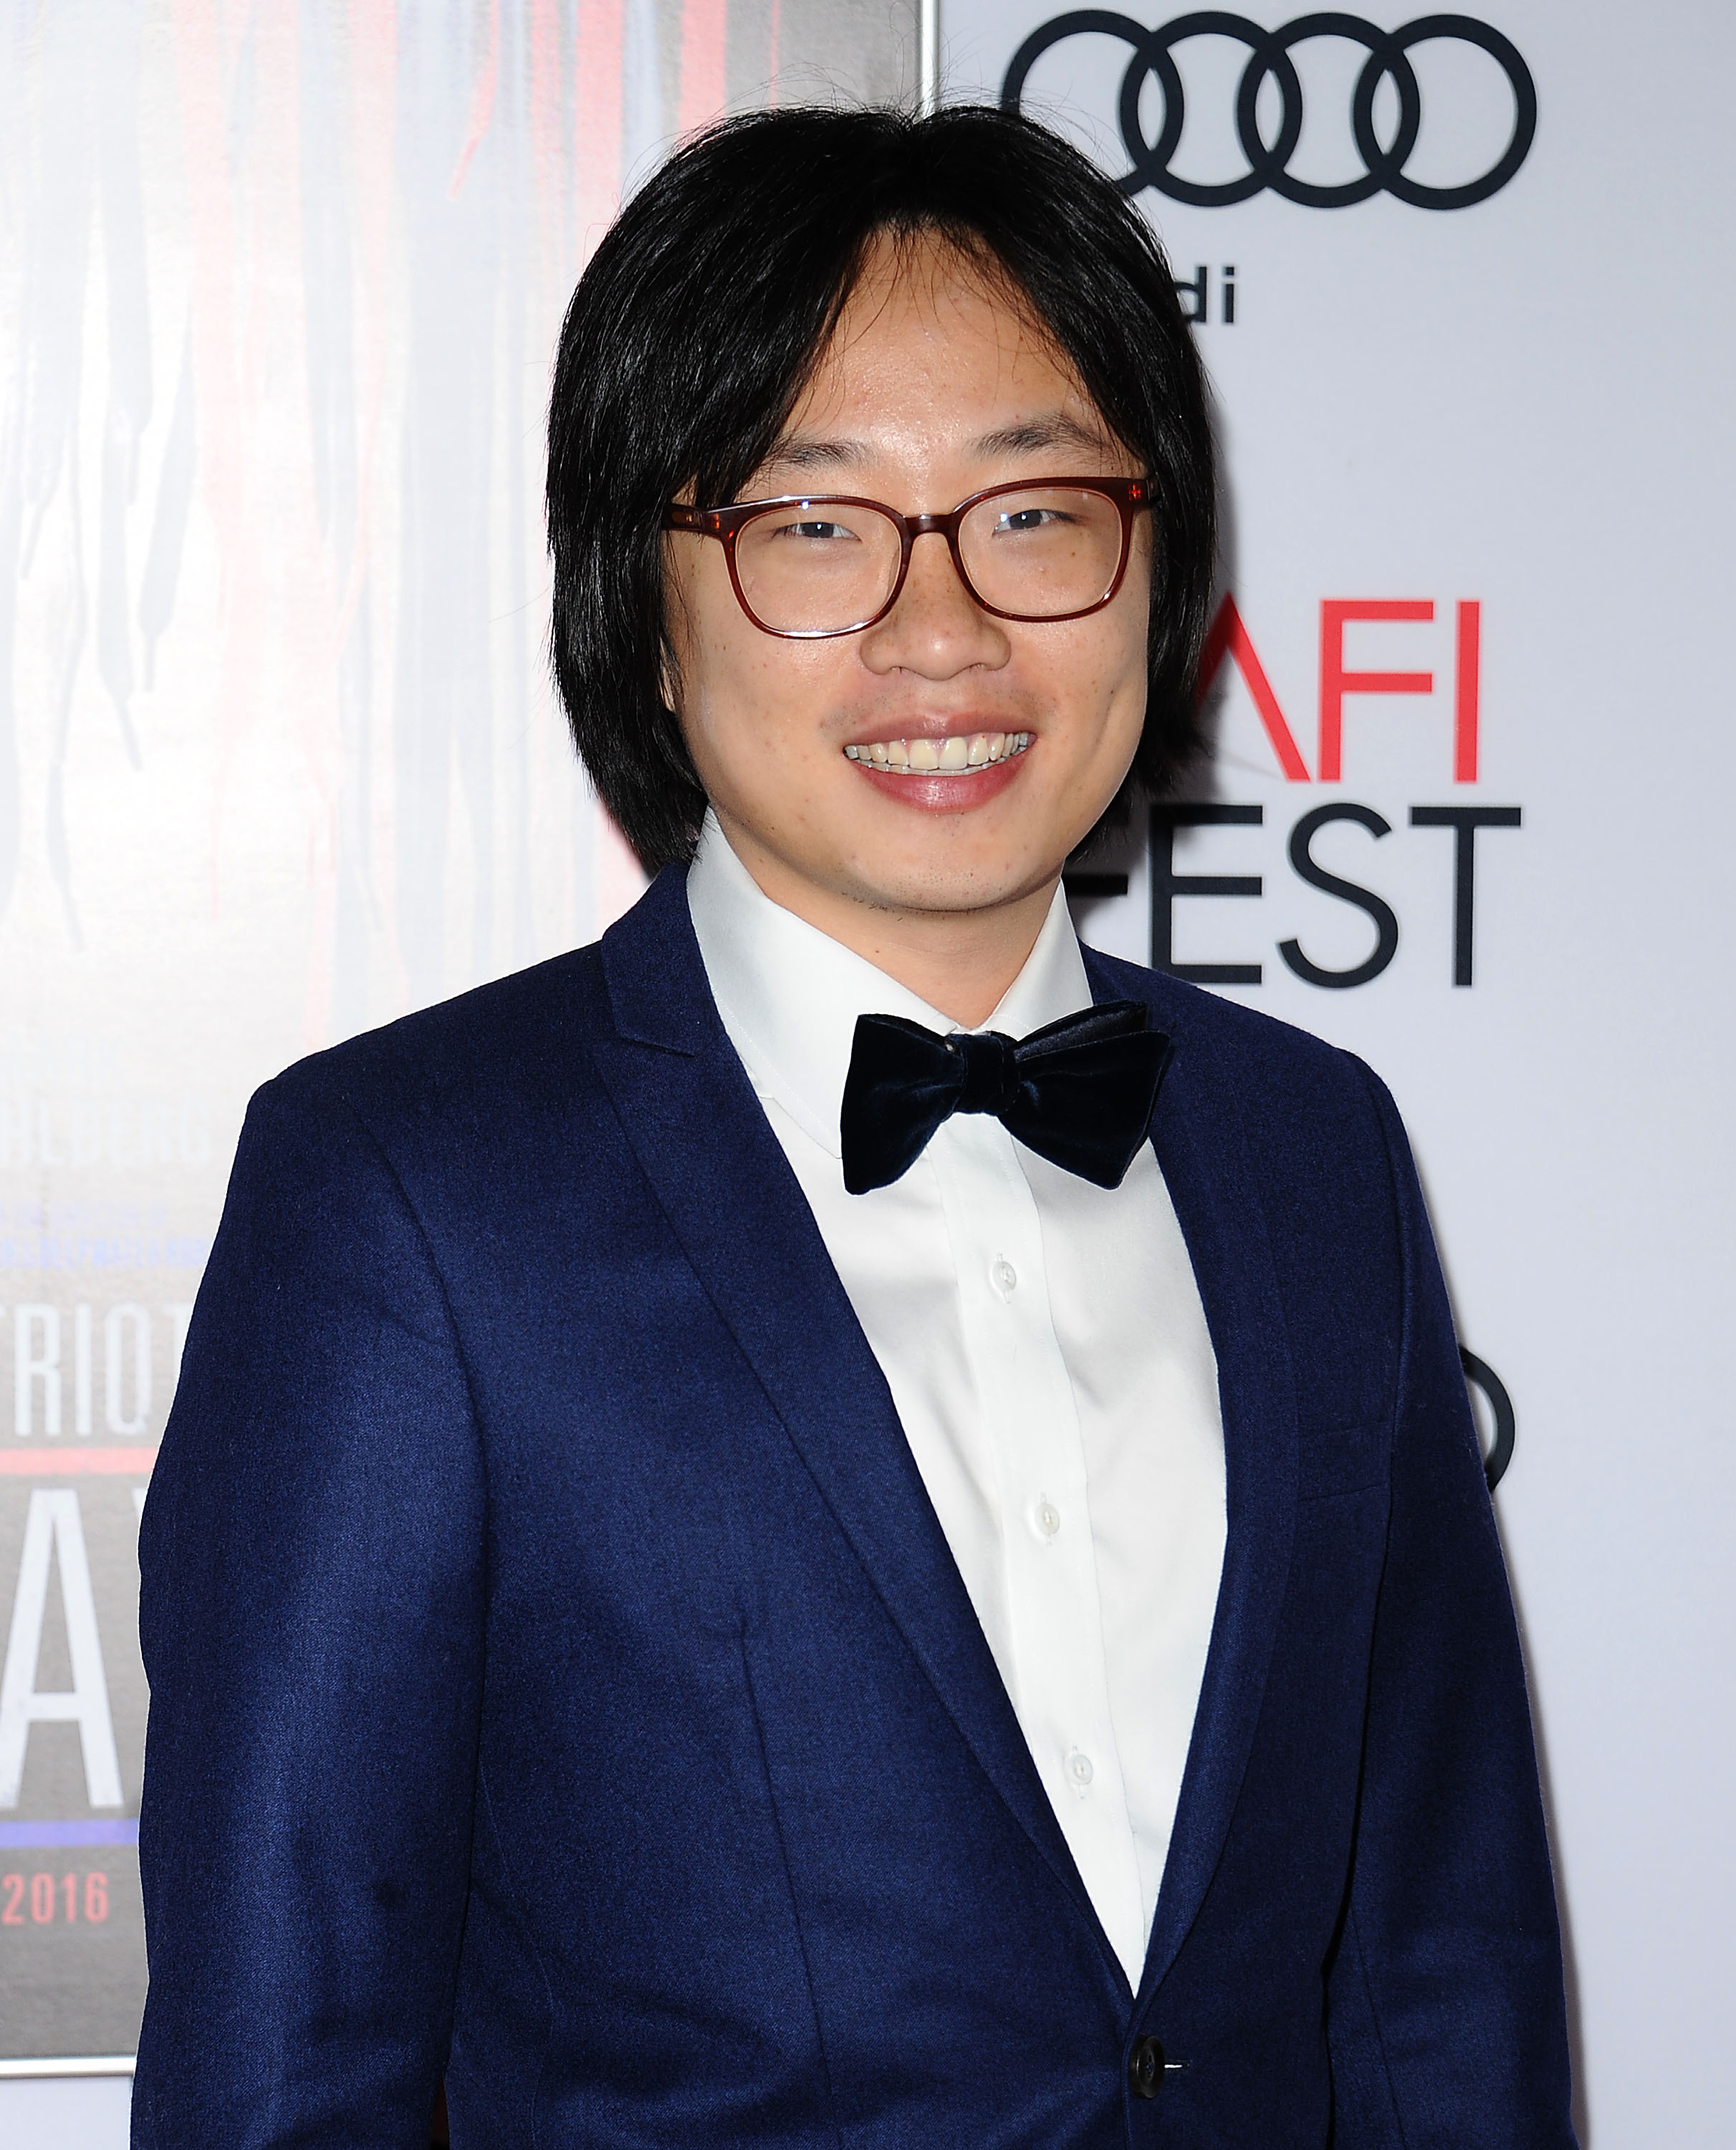 Jimmy O. Yang attends a screening of  Patriots Day  on November 17, 2016 in Hollywood, California.